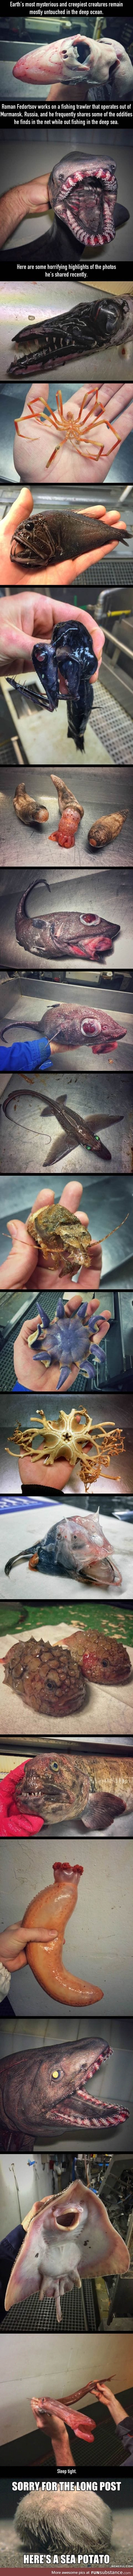 Crazy creatures from the depth of the ocean